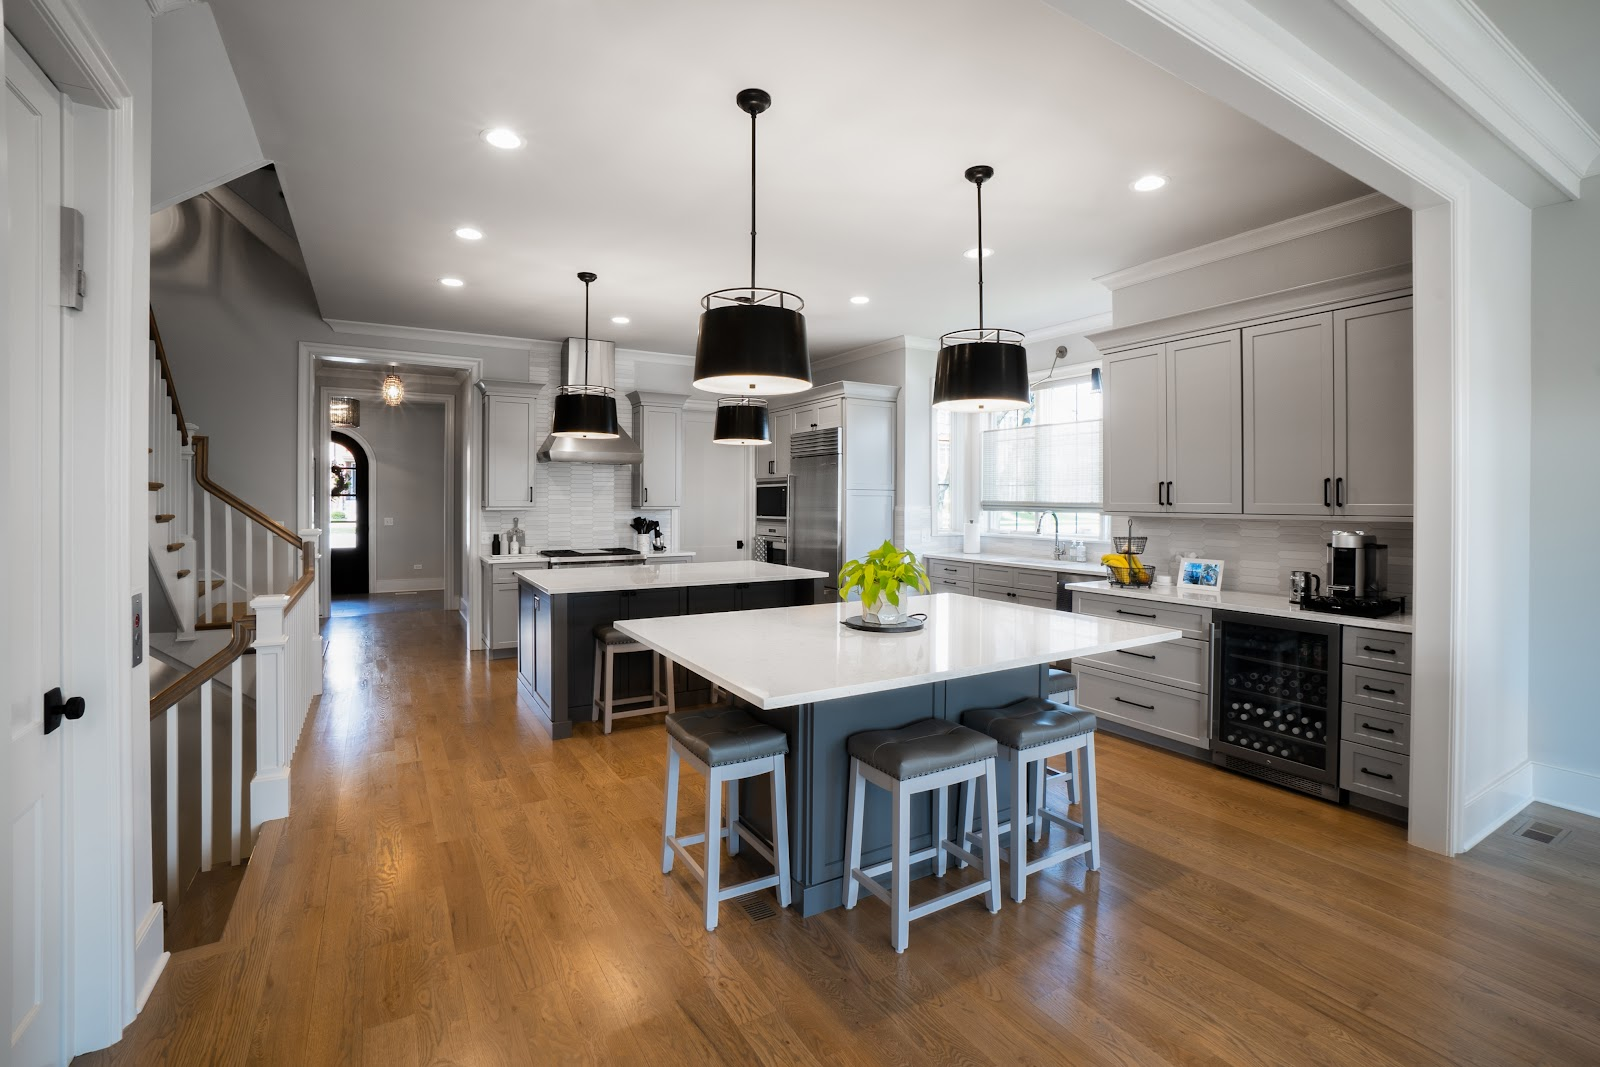 White Kitchen with dual contrasting colored eat-at islands, black drum pendant lighting with an open feel leading to the foyer and stairs.